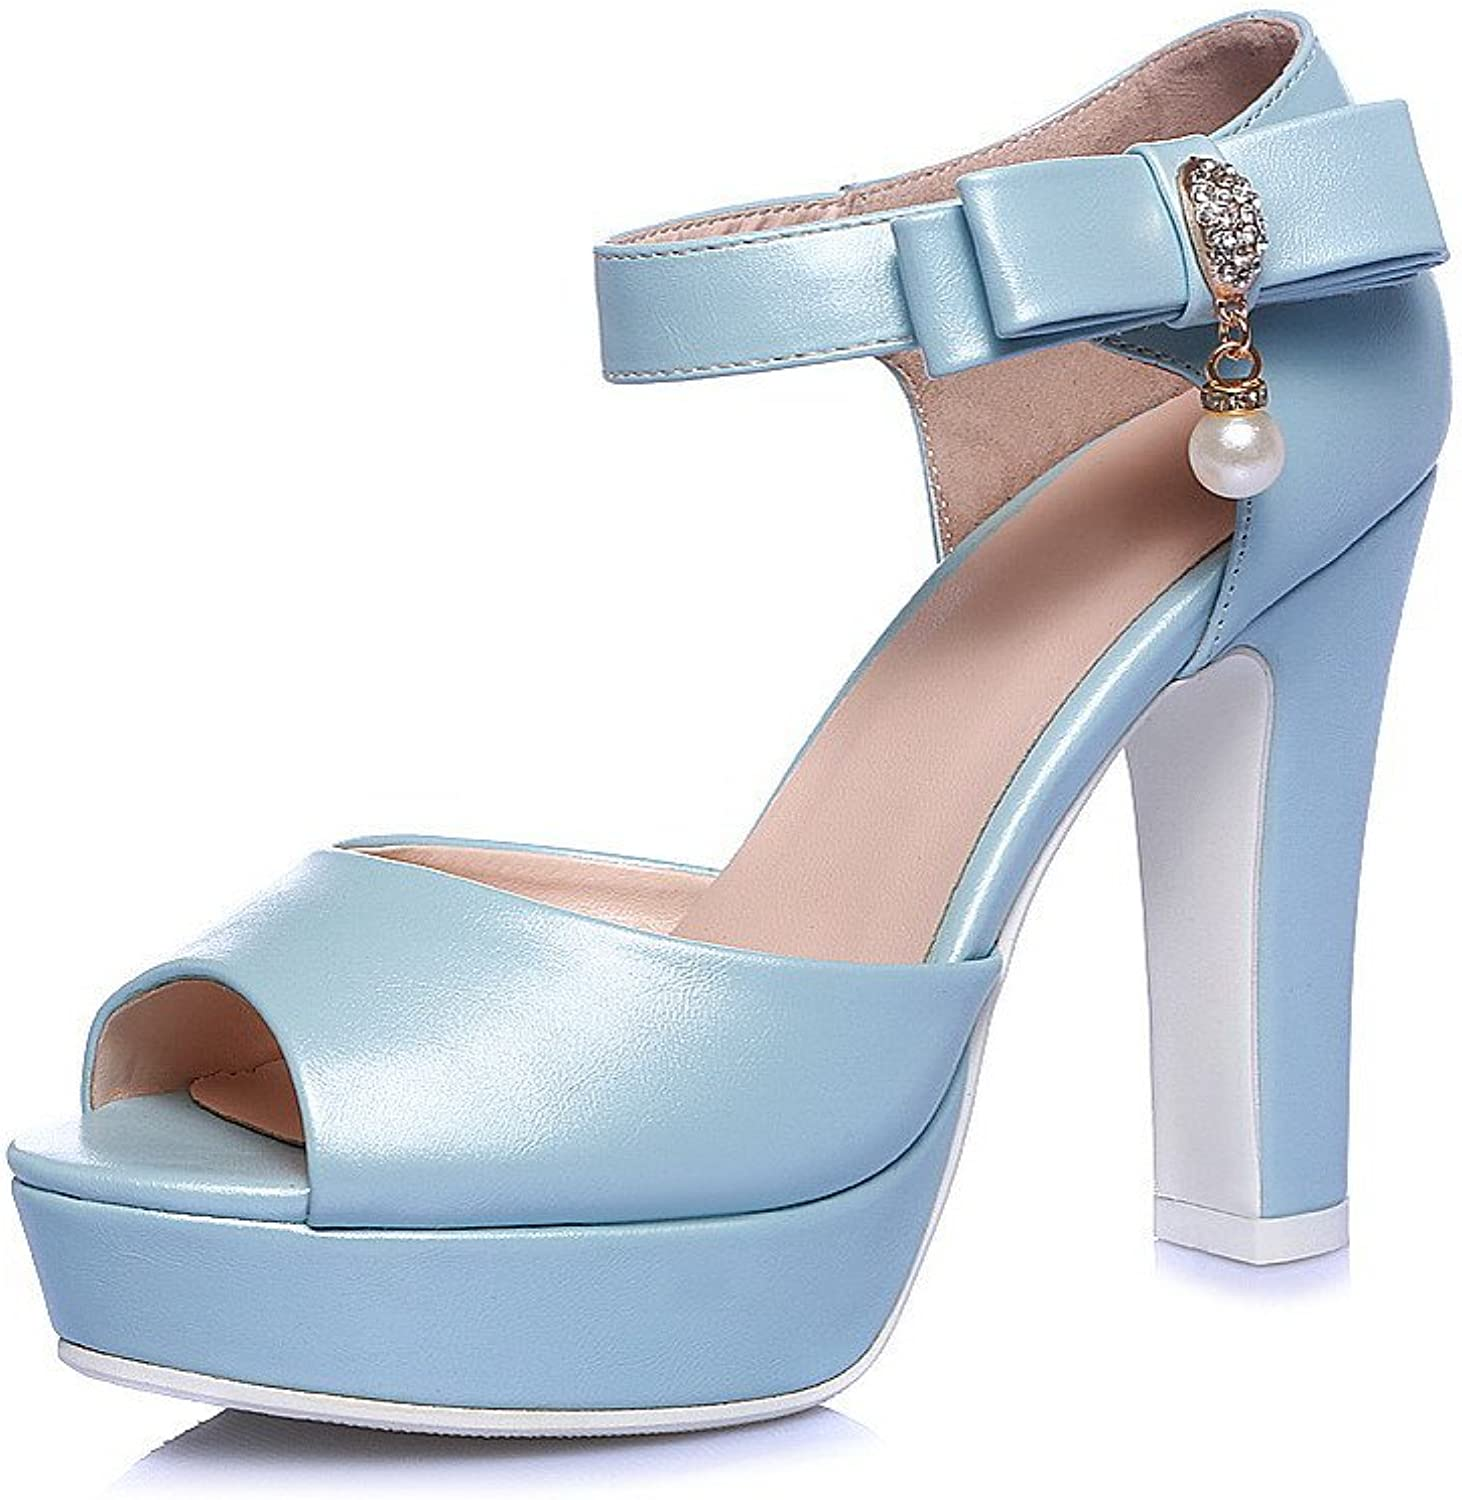 AmoonyFashion Women's High-Heels Soft Material Solid Buckle Peep Toe Sandals with Bows